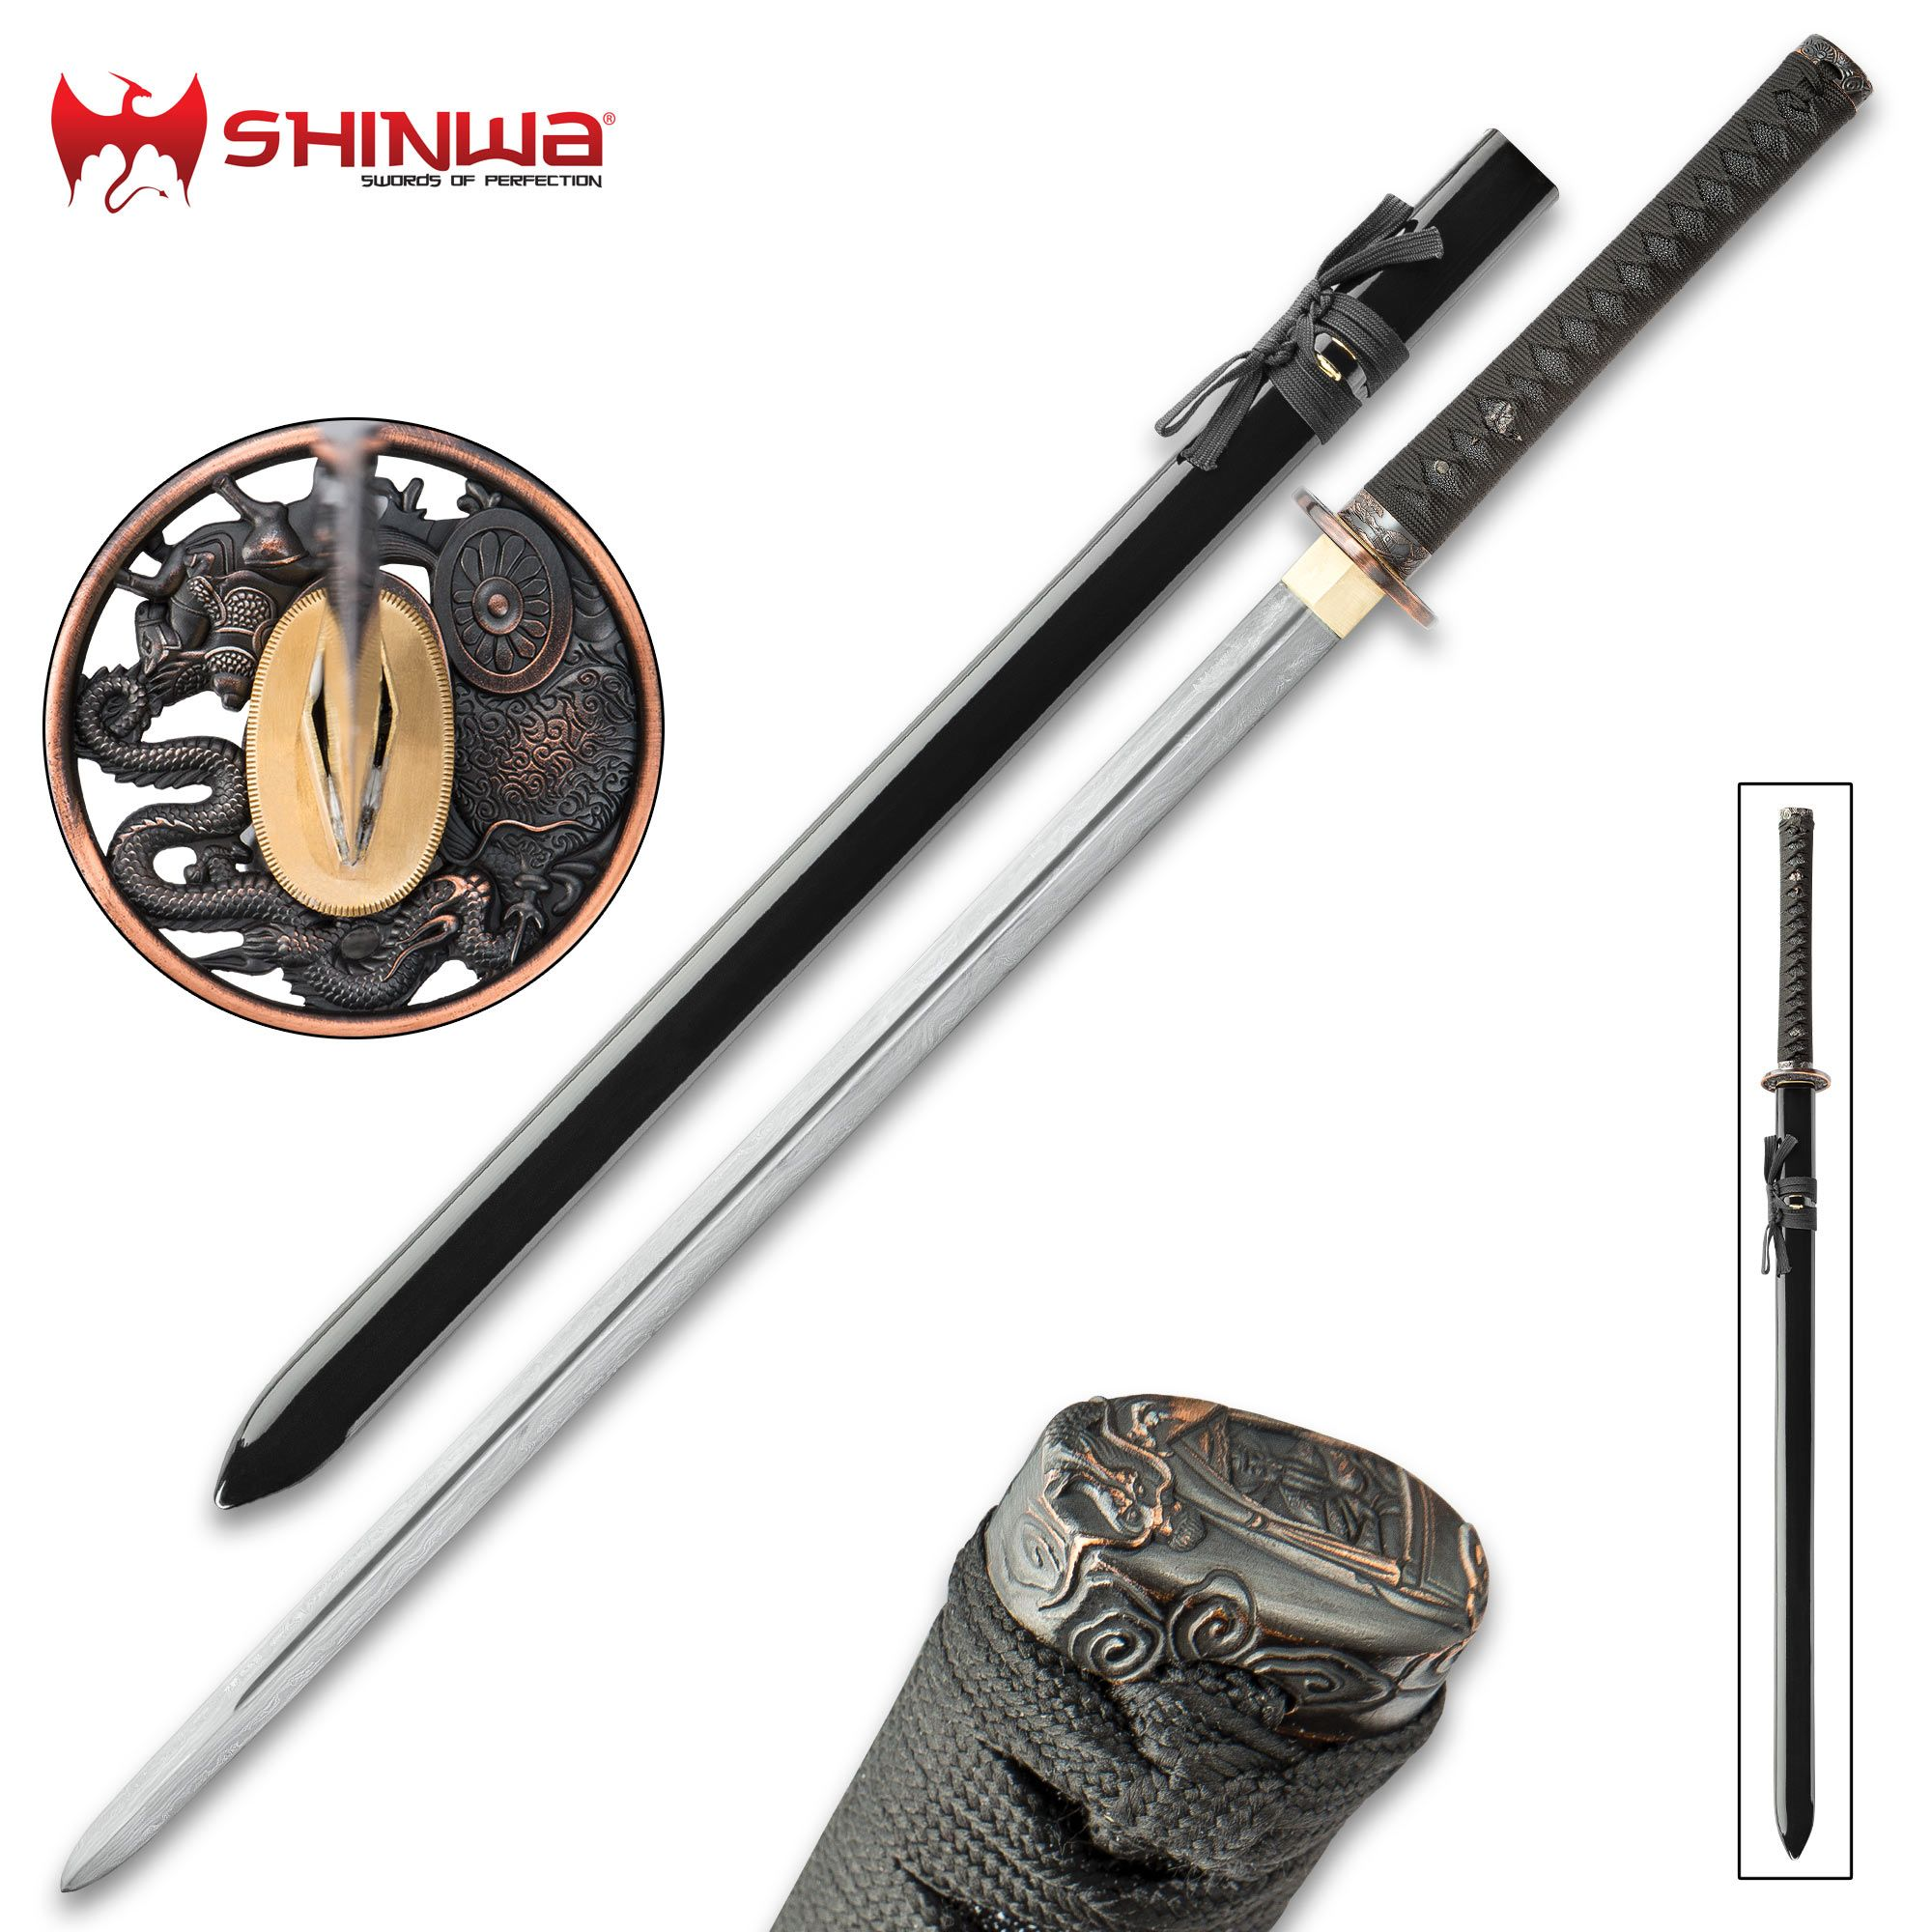 Shinwa Dragon Lord Handmade Katana Samurai Sword Double Edged Hand Forged Damascus Steel 1 000 Layers Distinctive Custom D Katana Samurai Swords Sword